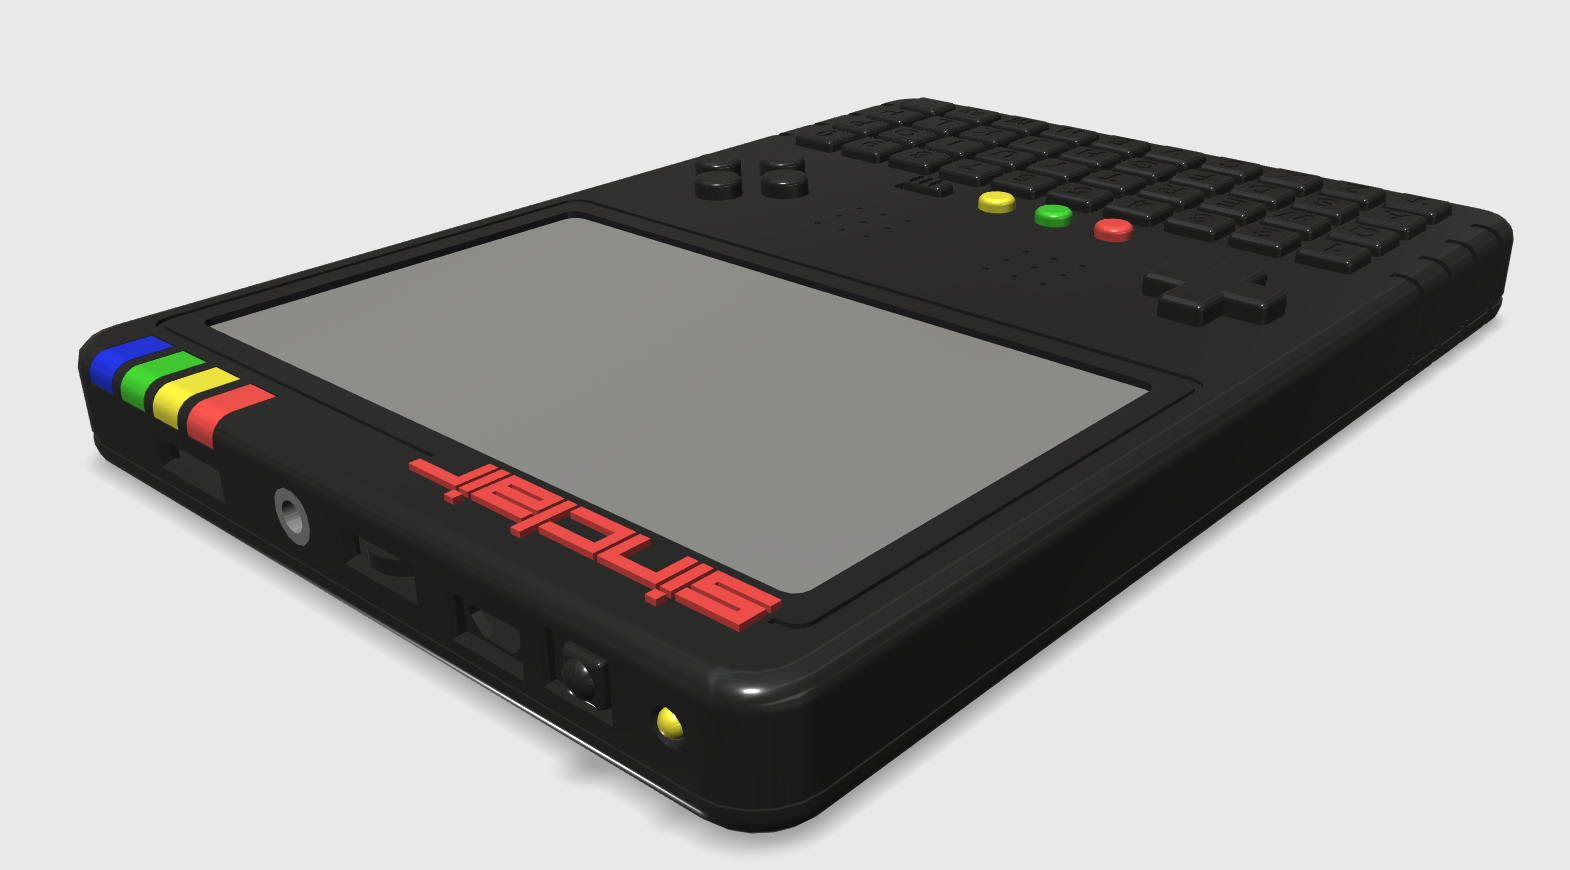 ZX Spectrum Next Handheld Design 2